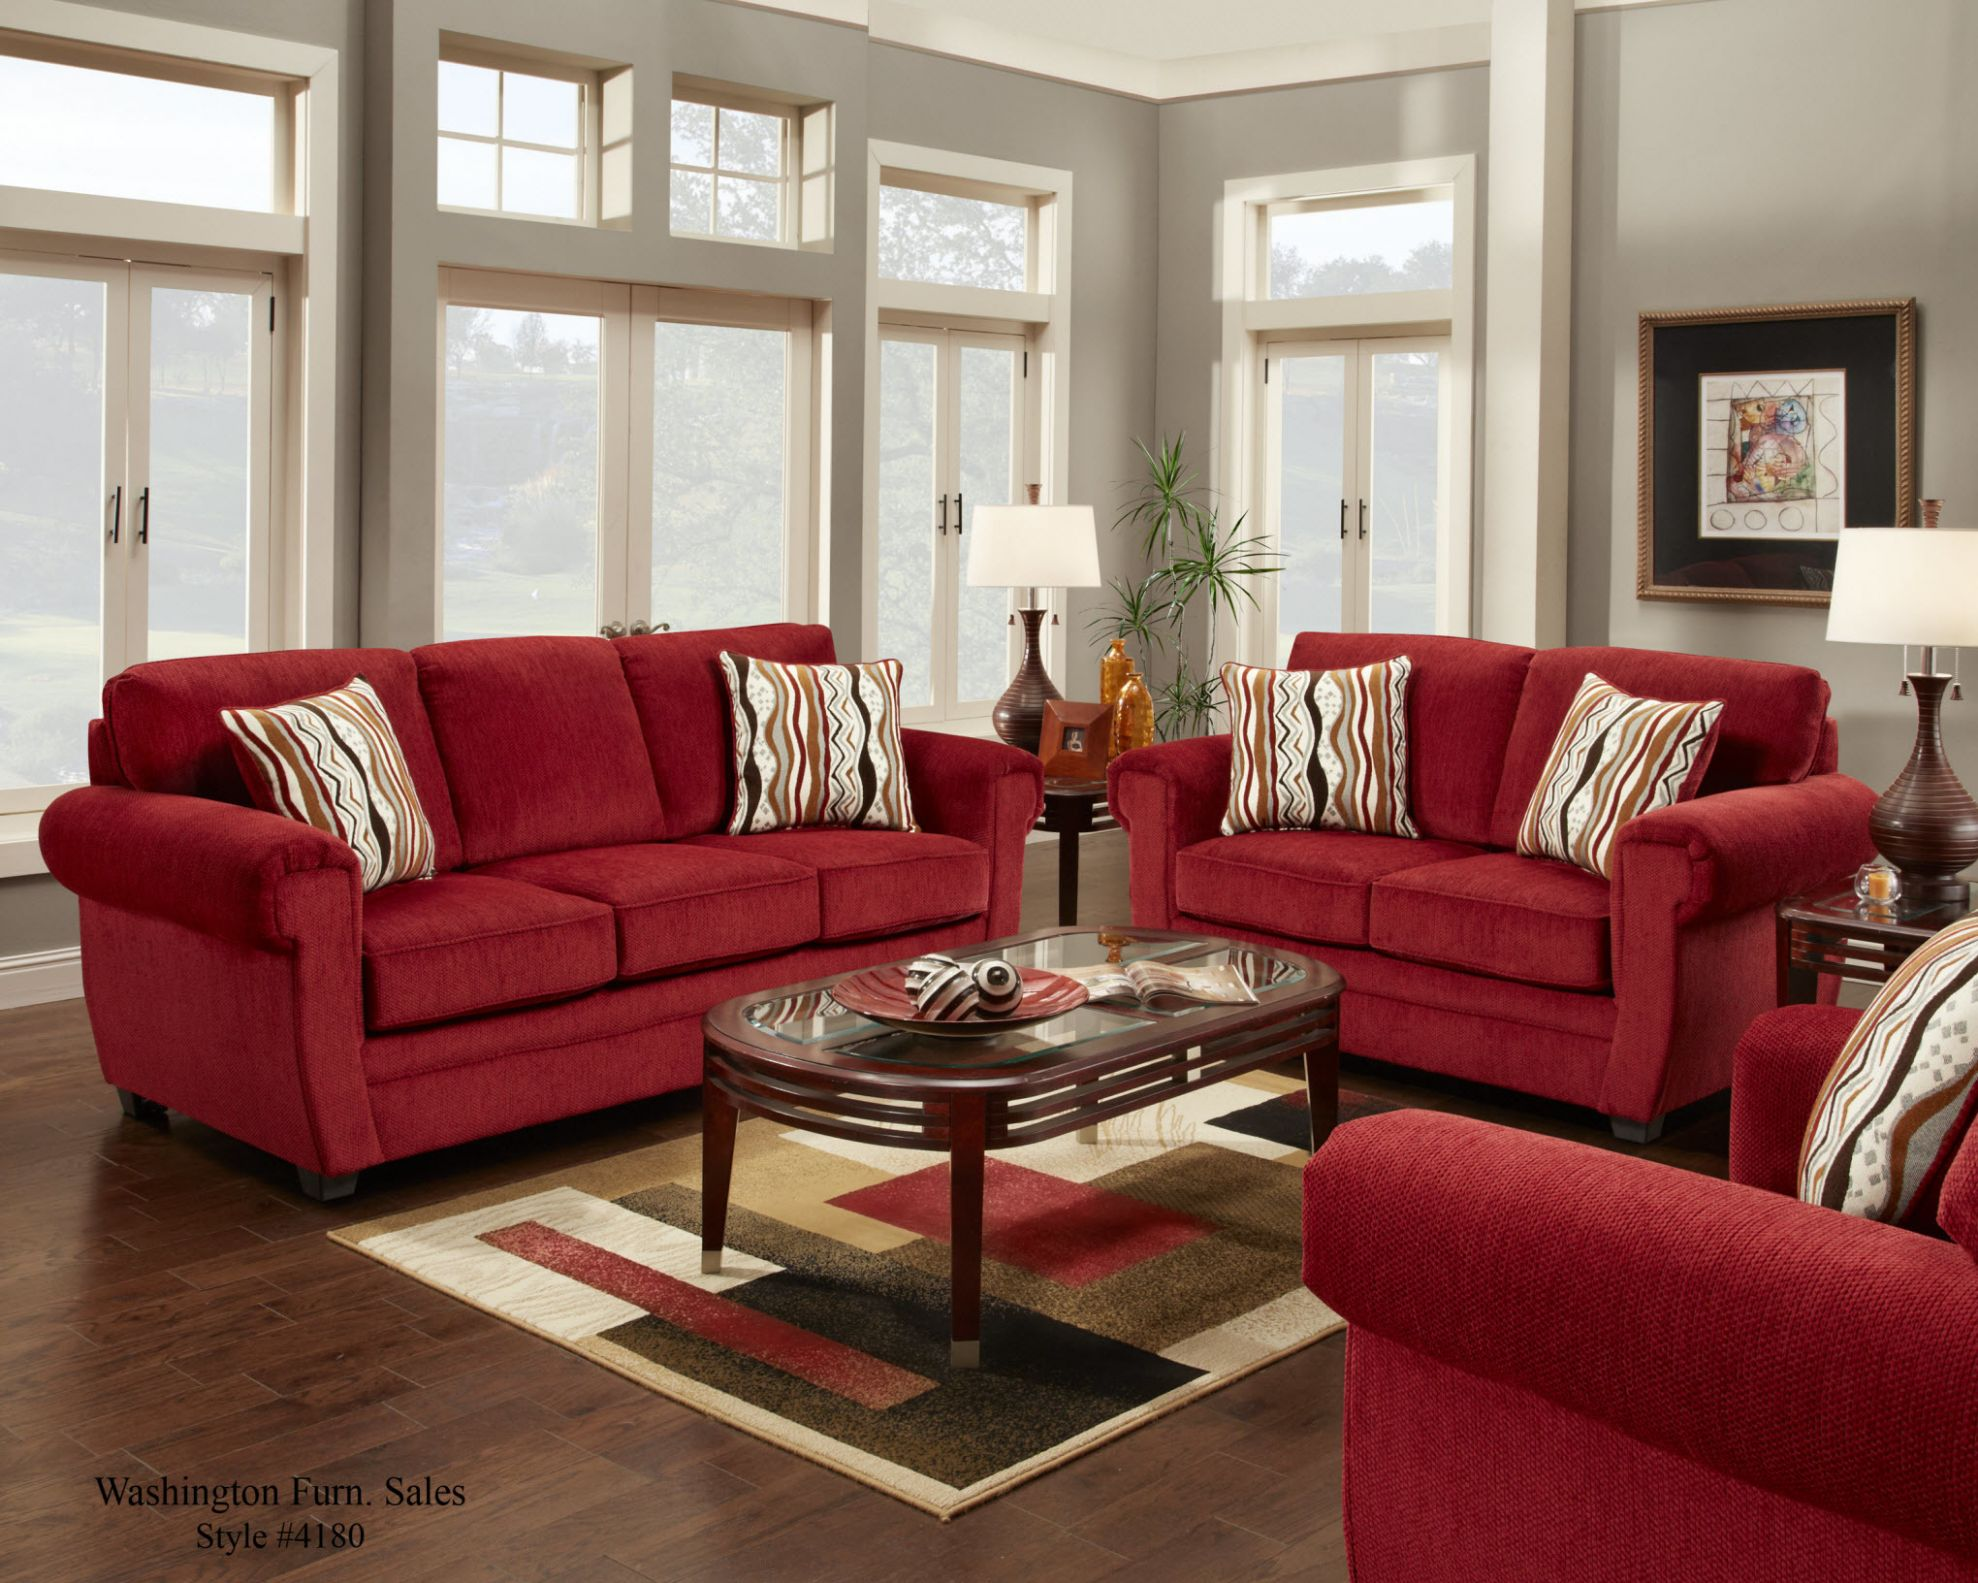 Amazing of Living Room Ideas With Red Sofa with Images About Love ..